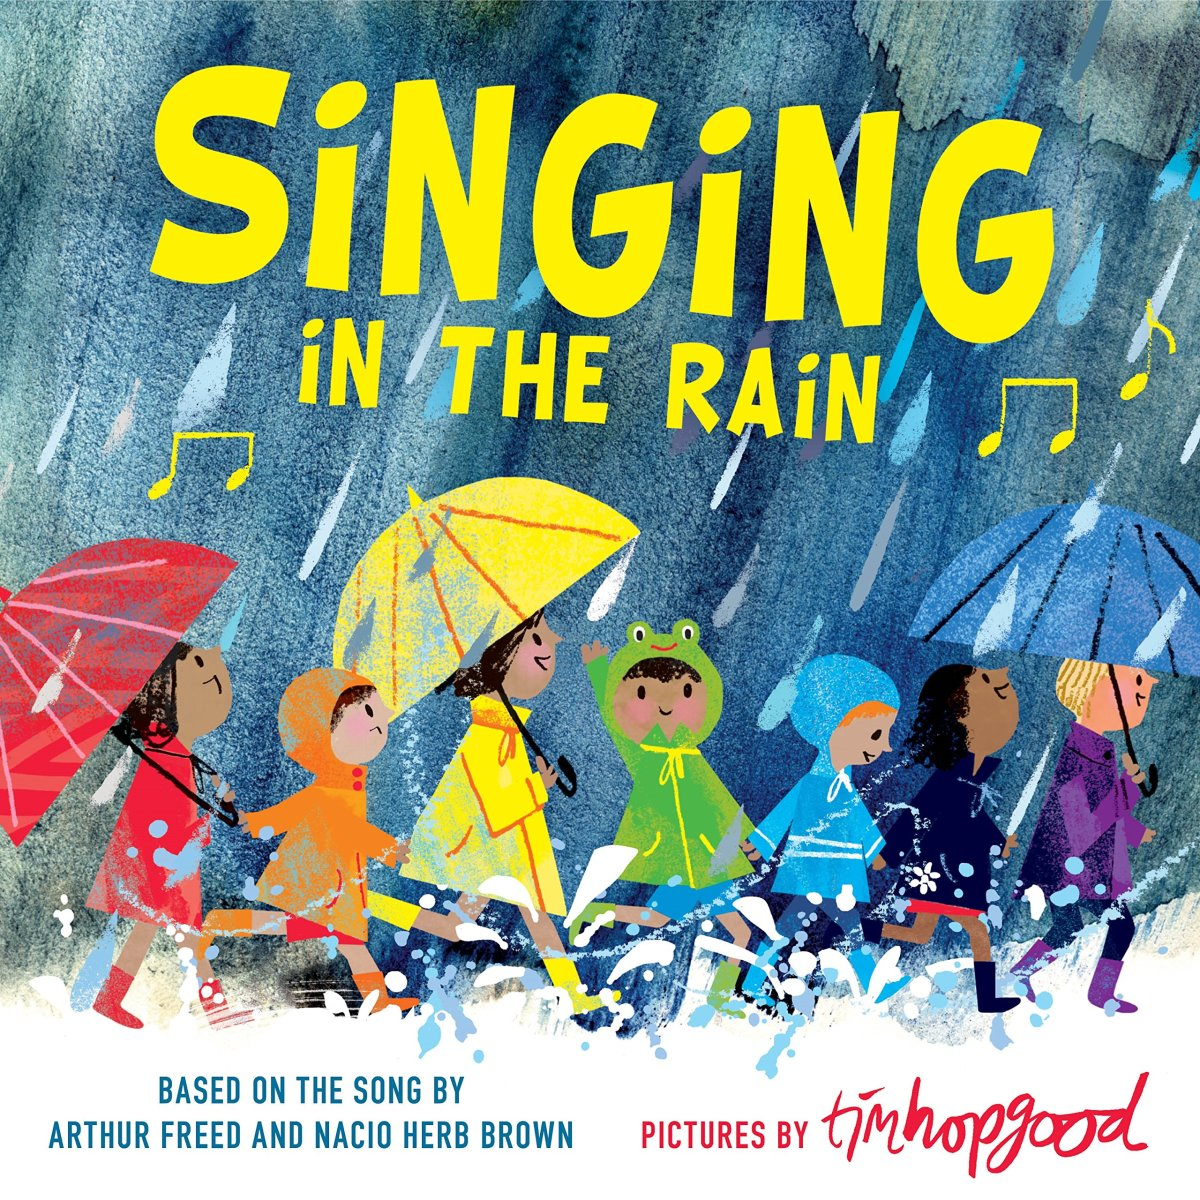 Singing in the Rain, illustrated by Tim Hopgood